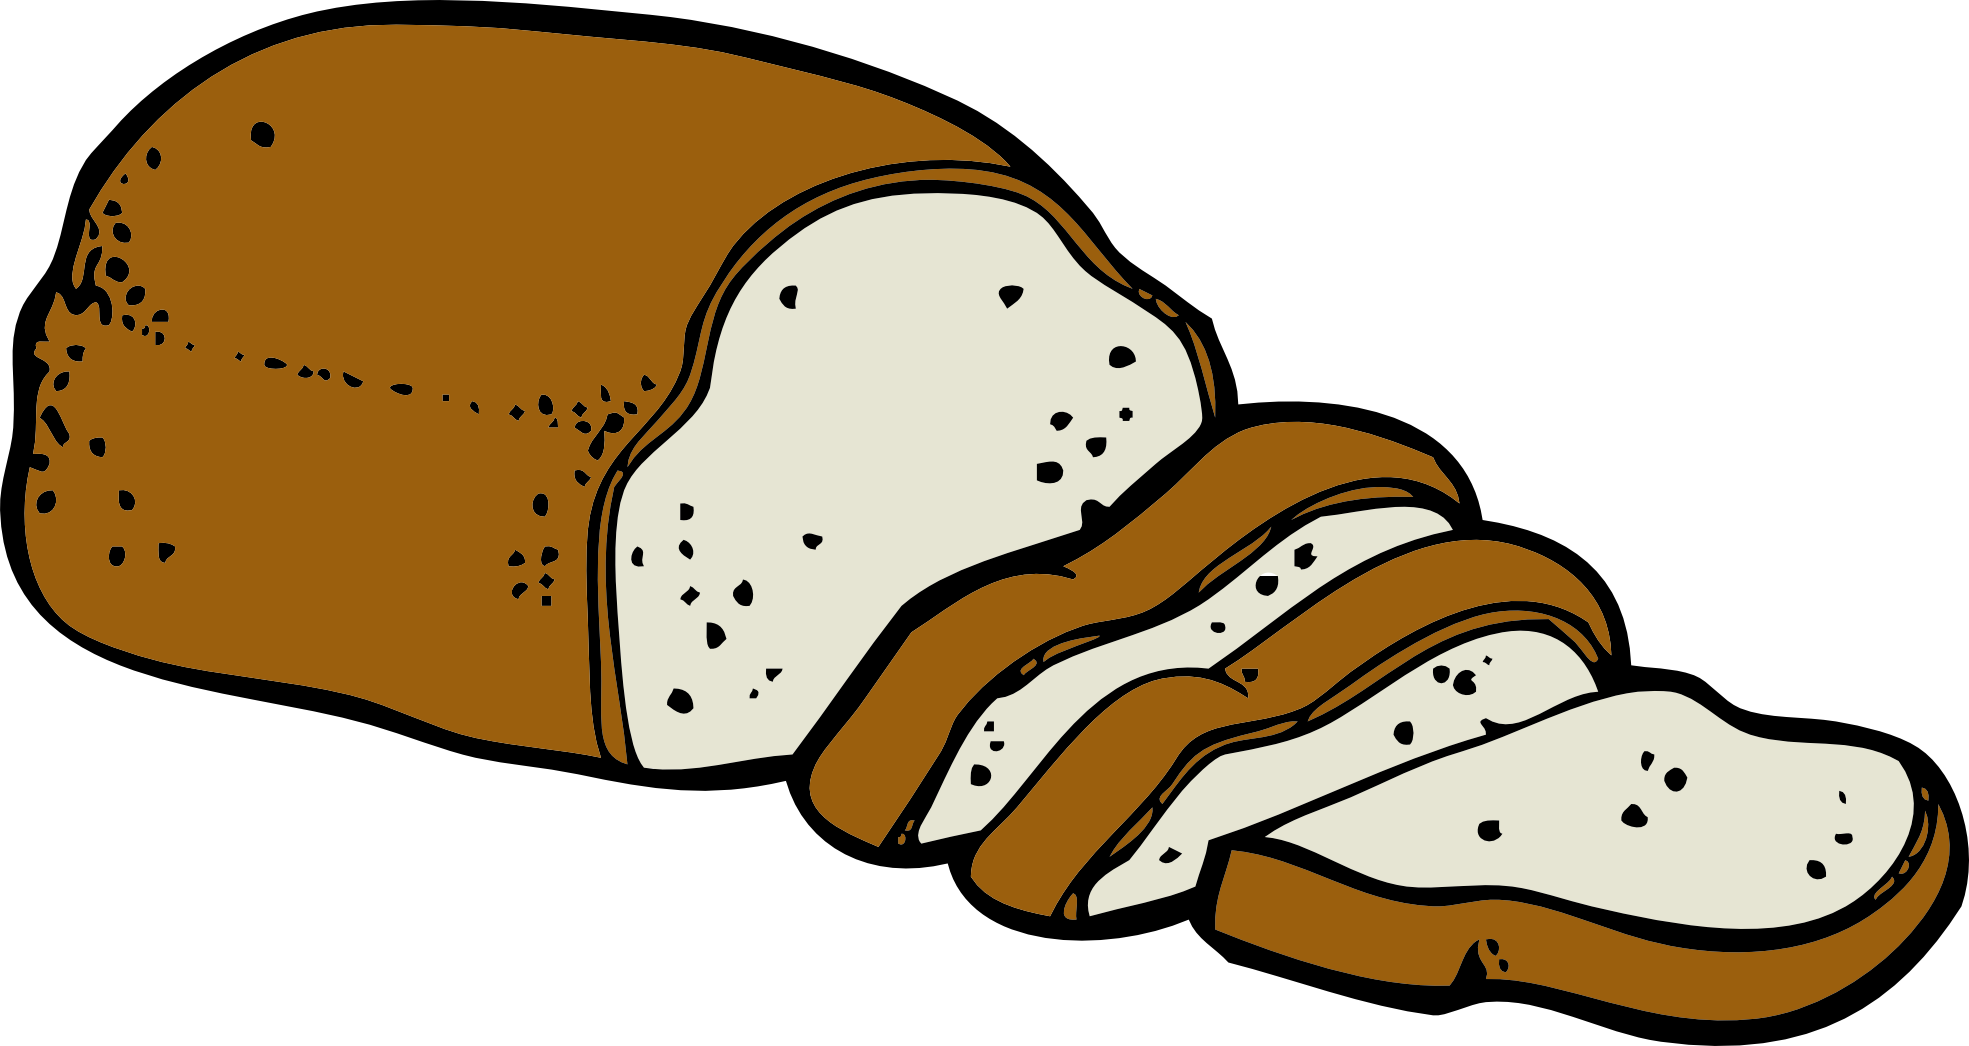 clipart free download Bread clipart breakfast bread. Panda free images breadclipart.